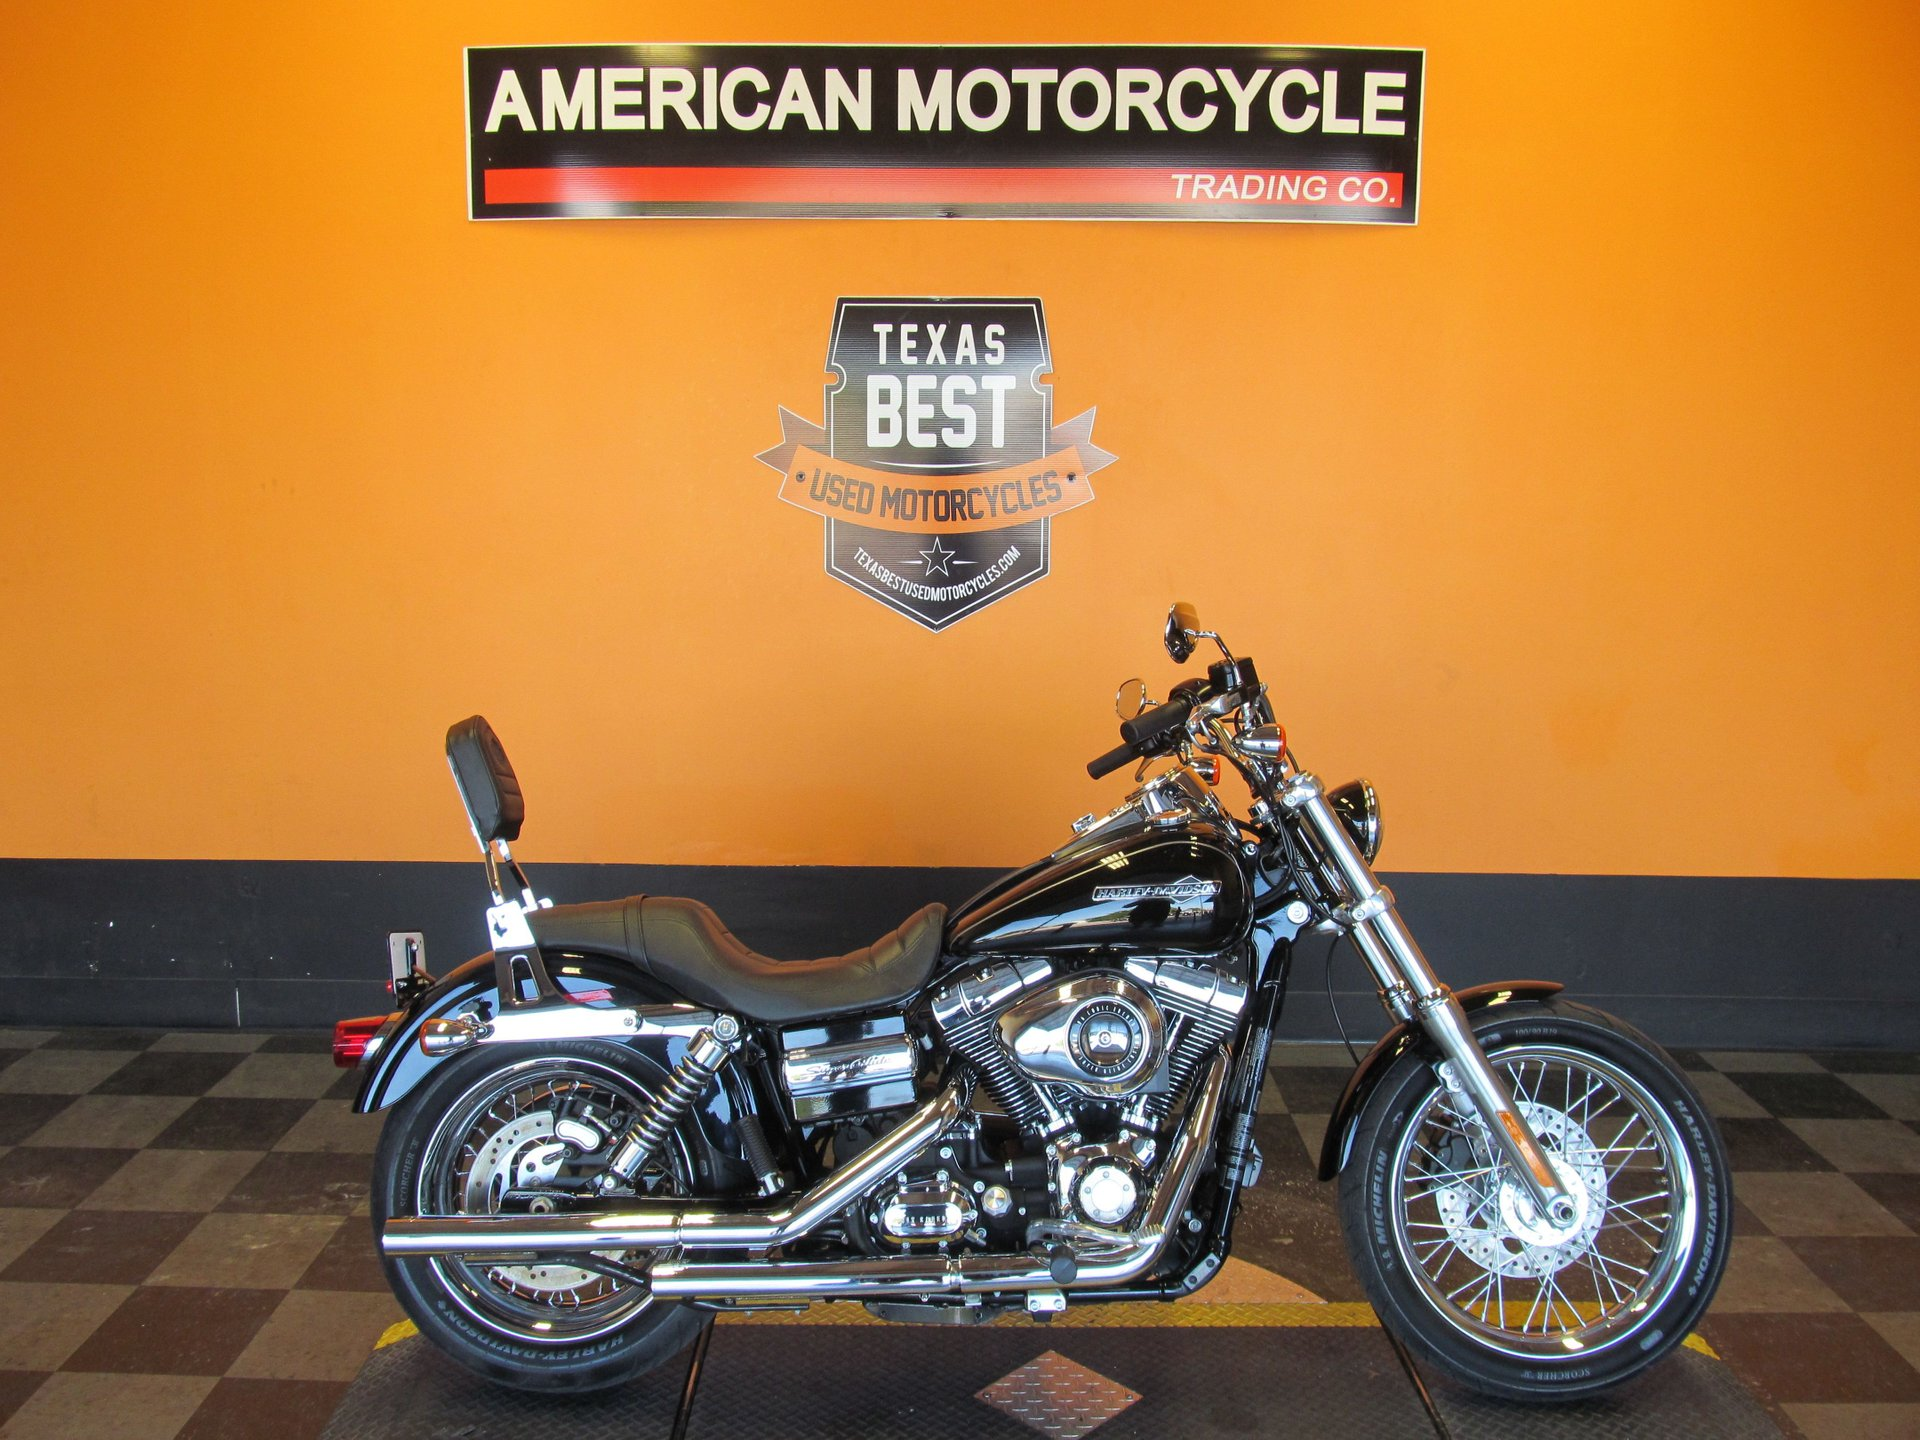 For Sale 2011 Harley-Davidson Dyna Super Glide